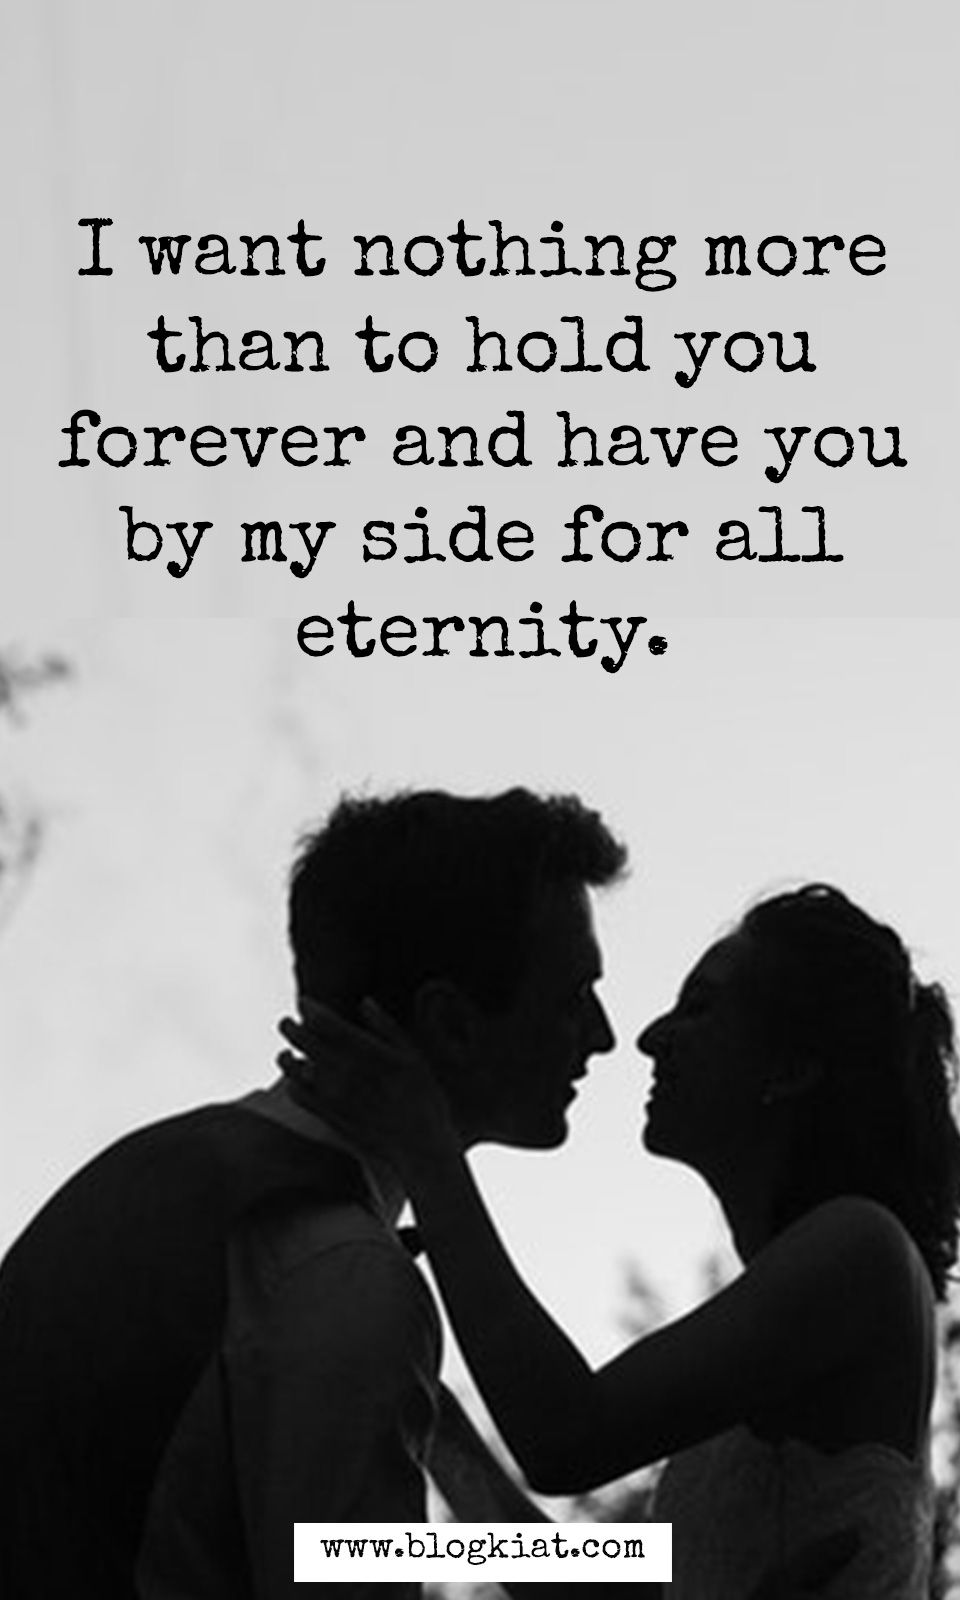 6 Short Love Quotes For Her & Him - Blogkiat  Love quotes for